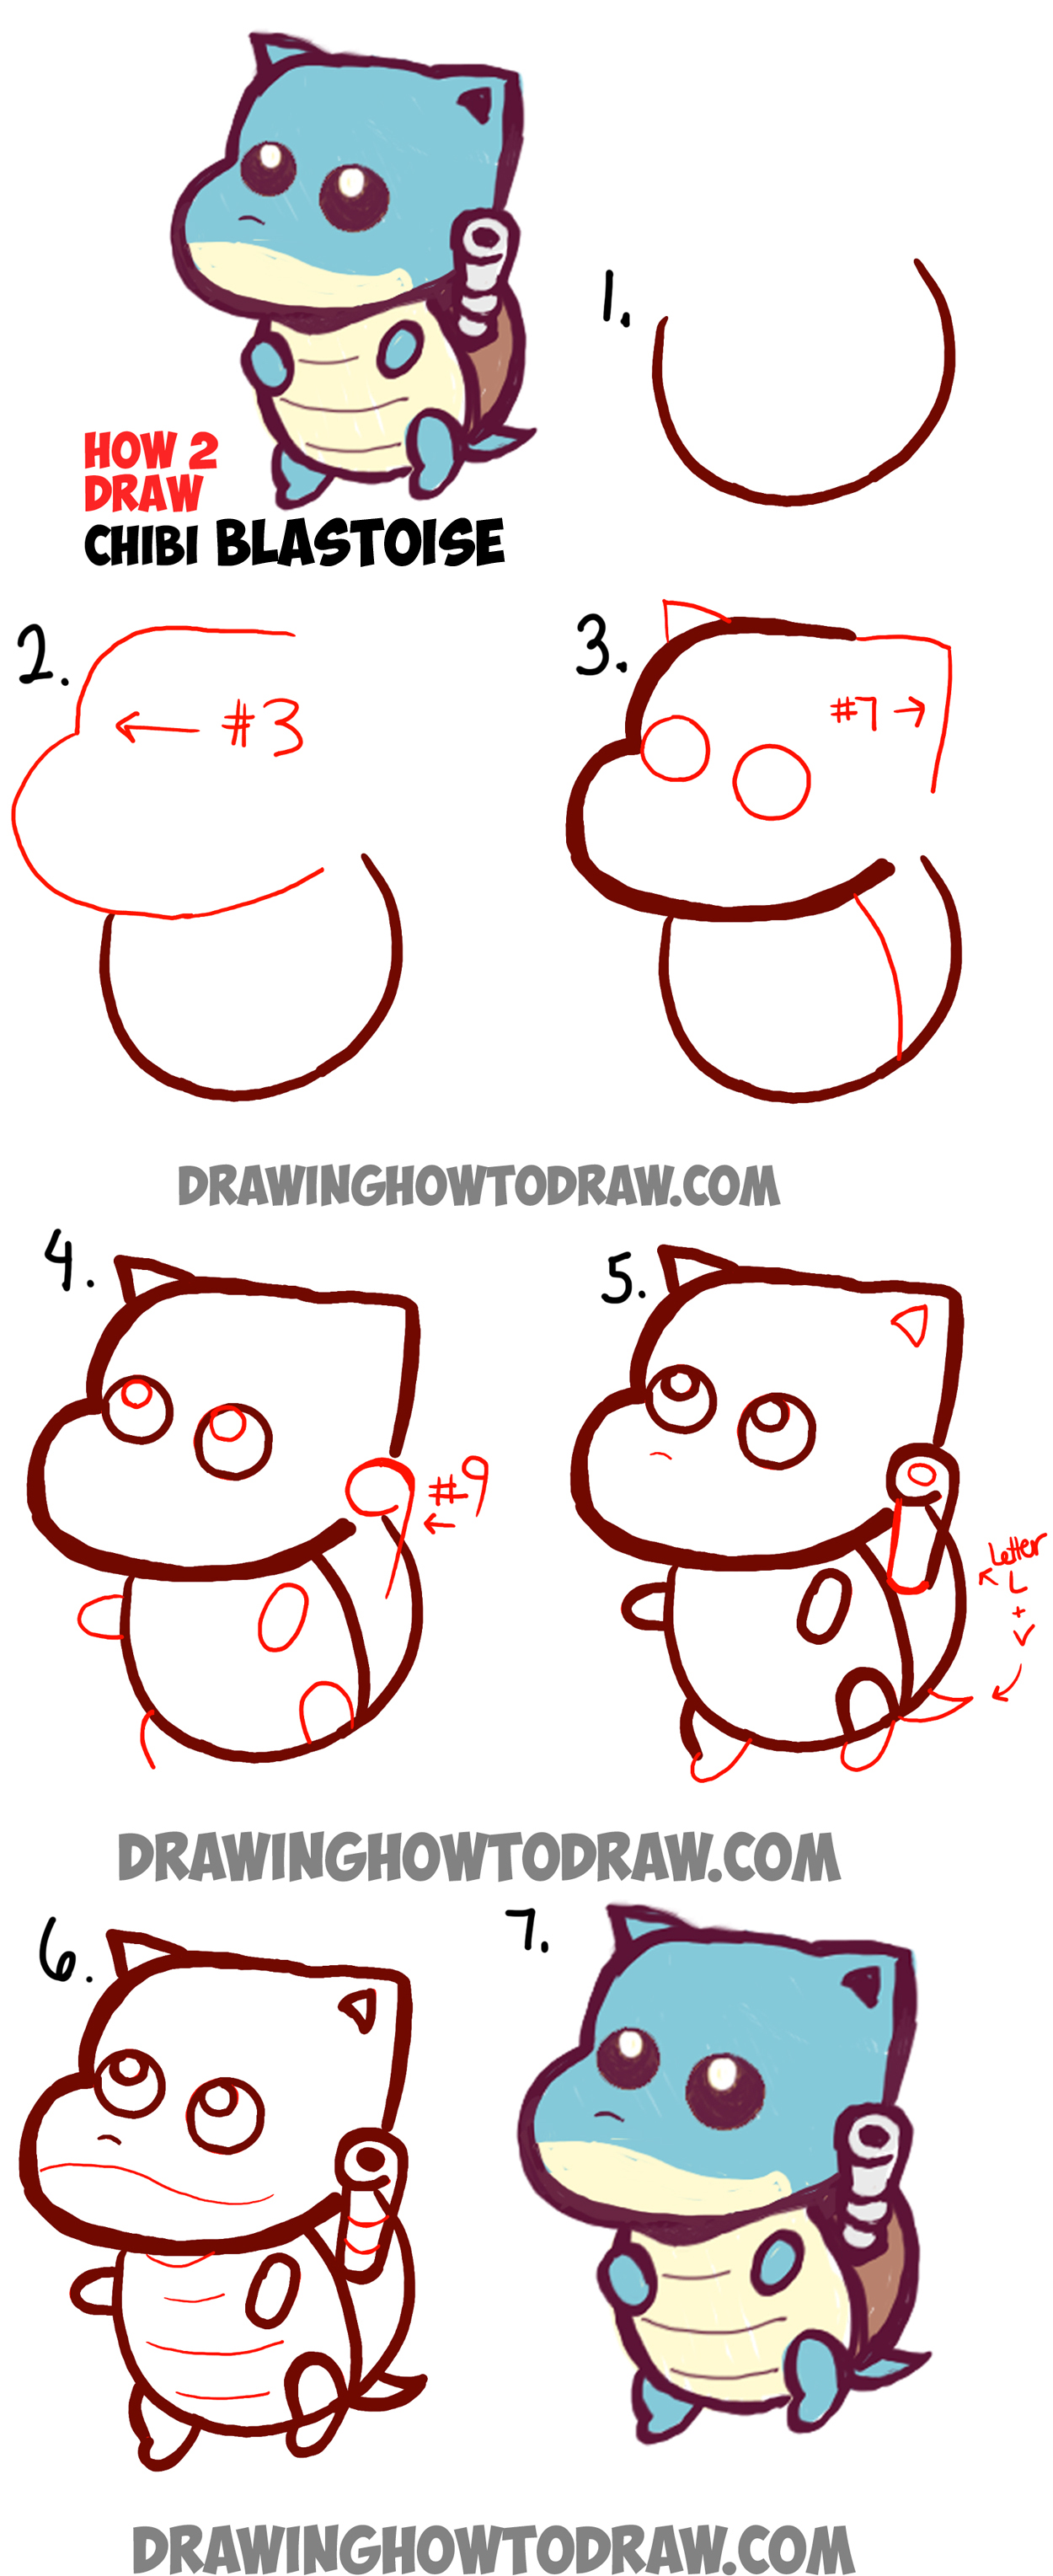 How to draw cute baby chibi blastoise from pokemon easy for Learn drawing online step by step